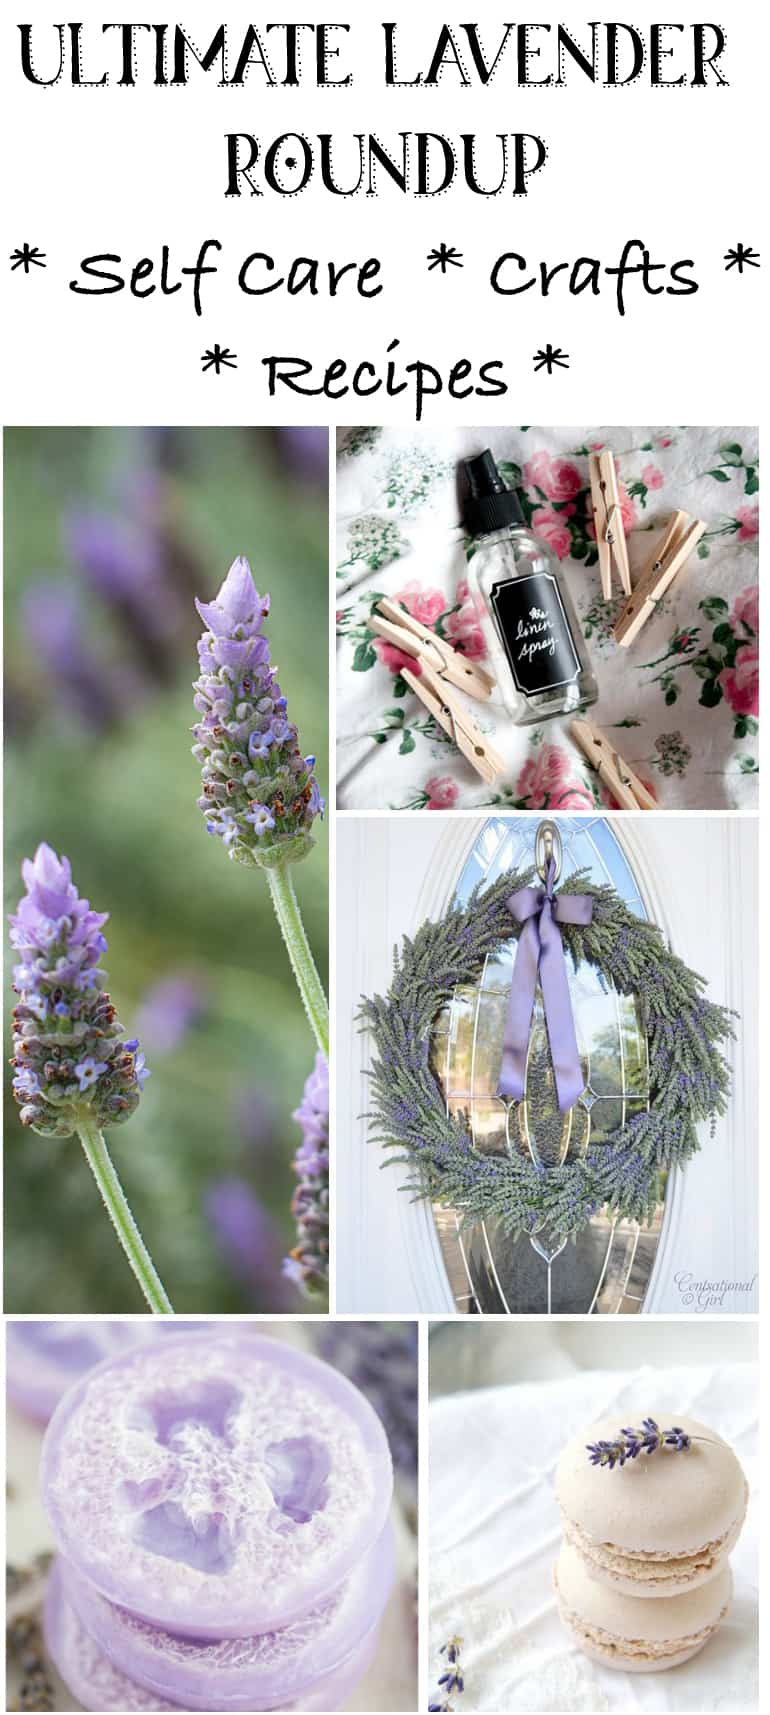 ultimate lavender roundup